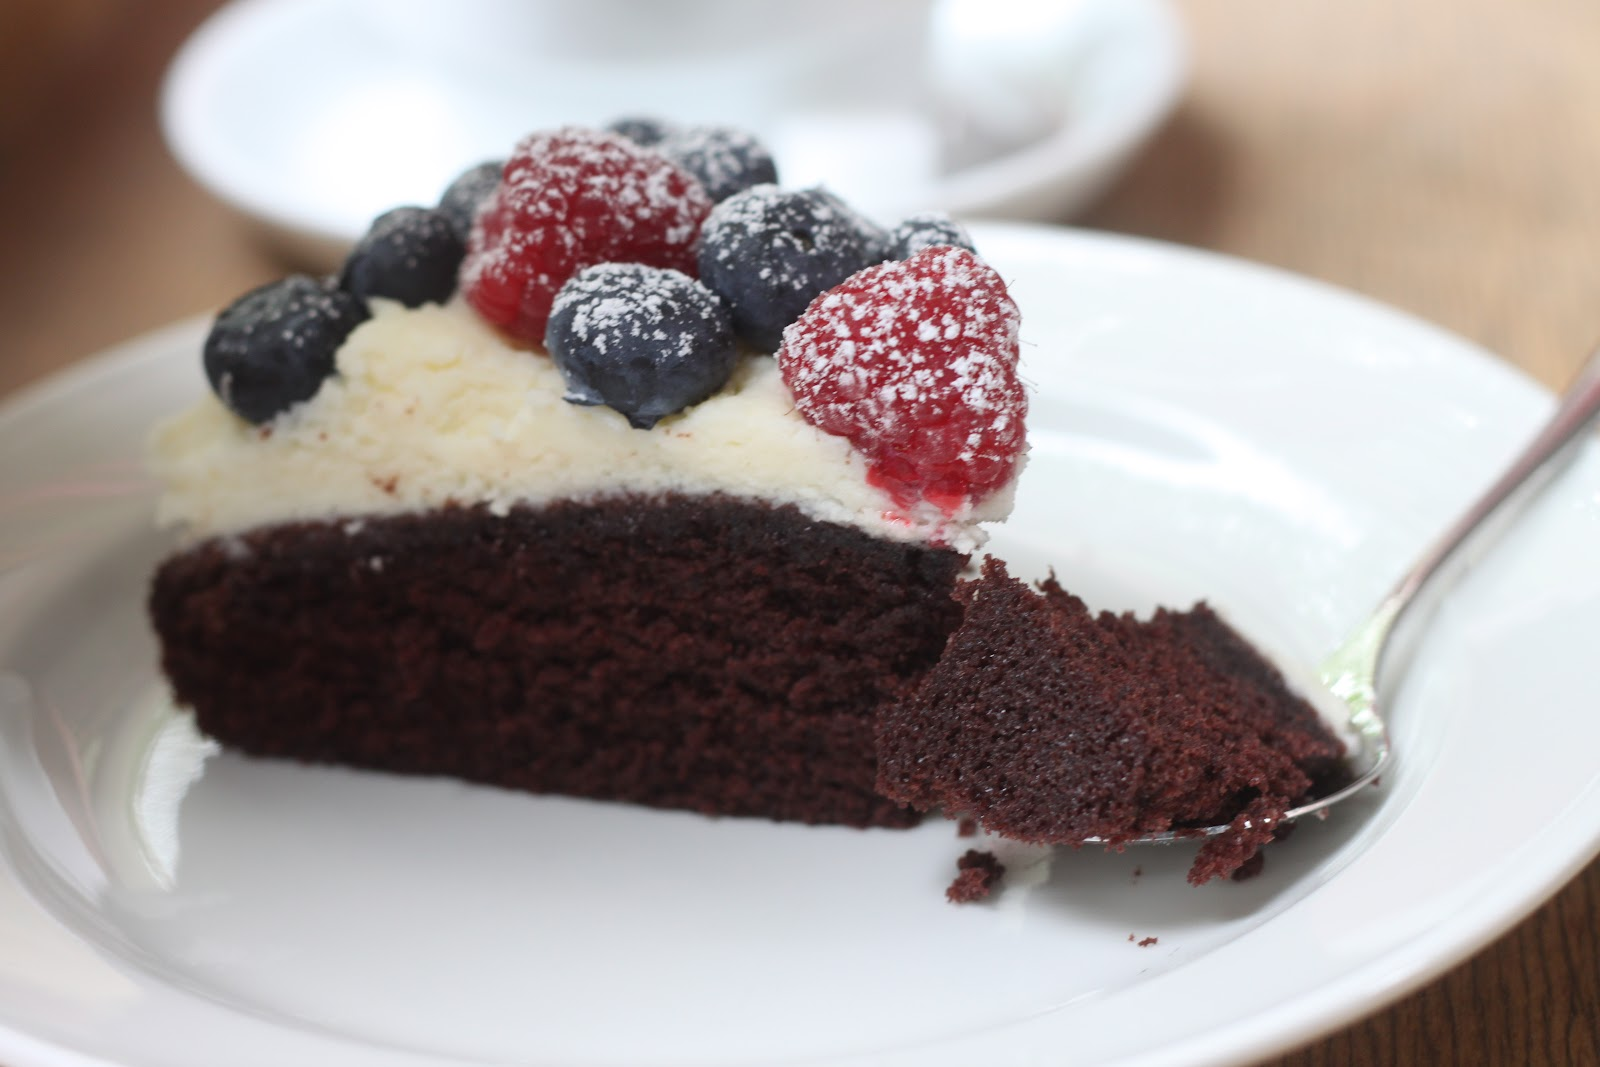 ... Mother's Day Dessert 2 - Chocolate Torte with Raspberry and Blueberry